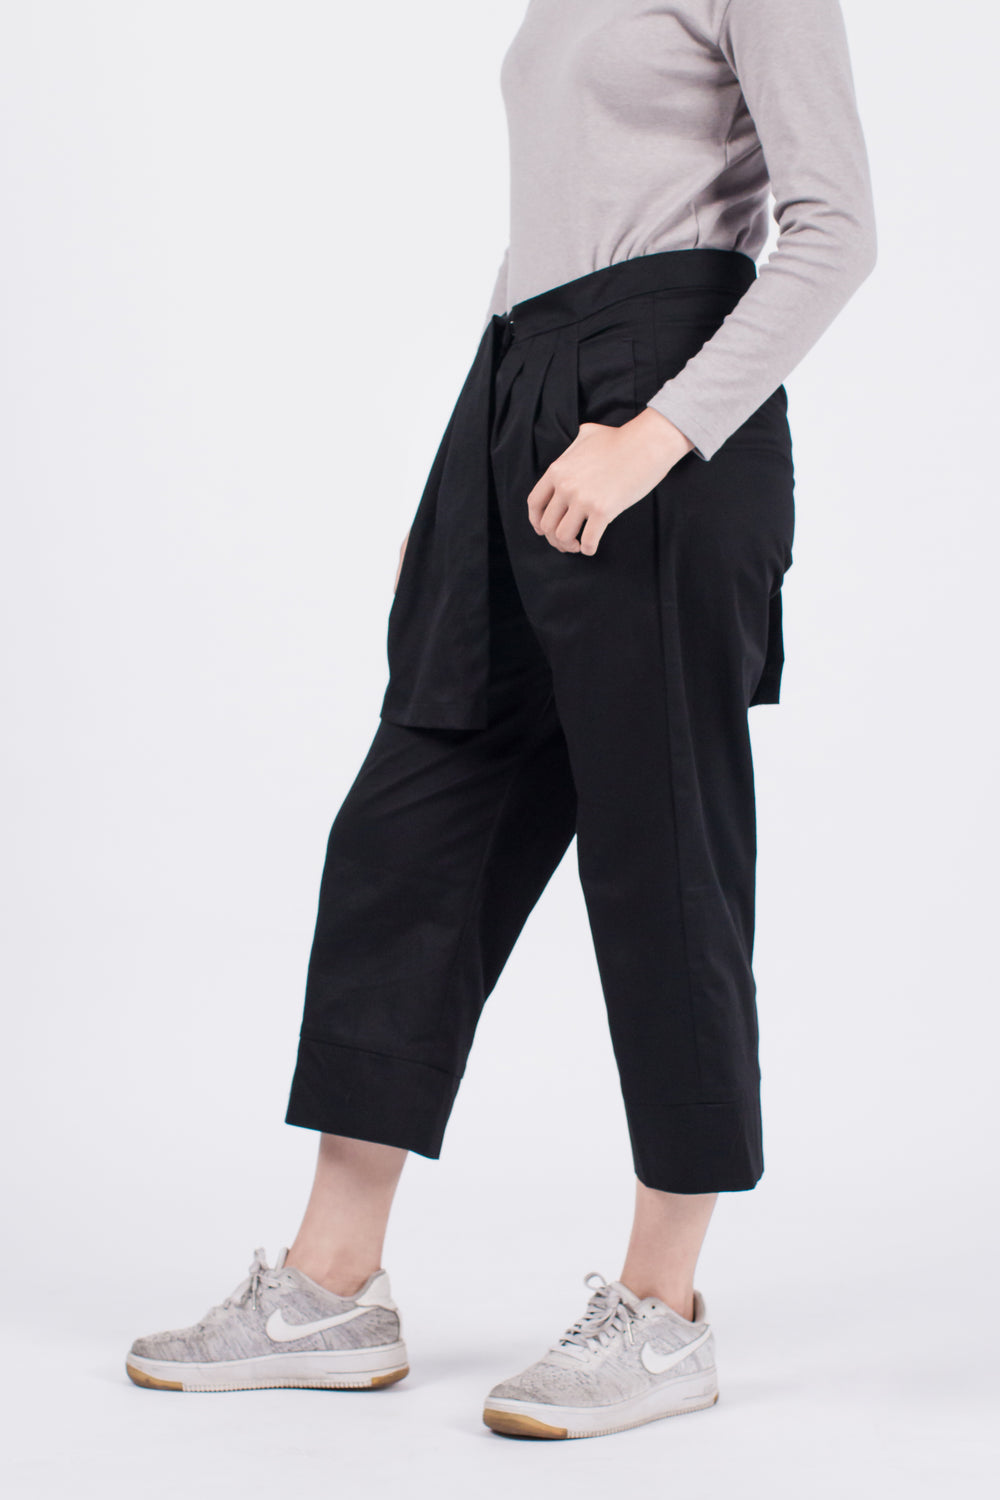 Muzca Tallulah Pants Modest Loose Fitting Long Cropped Black Pants with Side Pockets in 100% Cotton